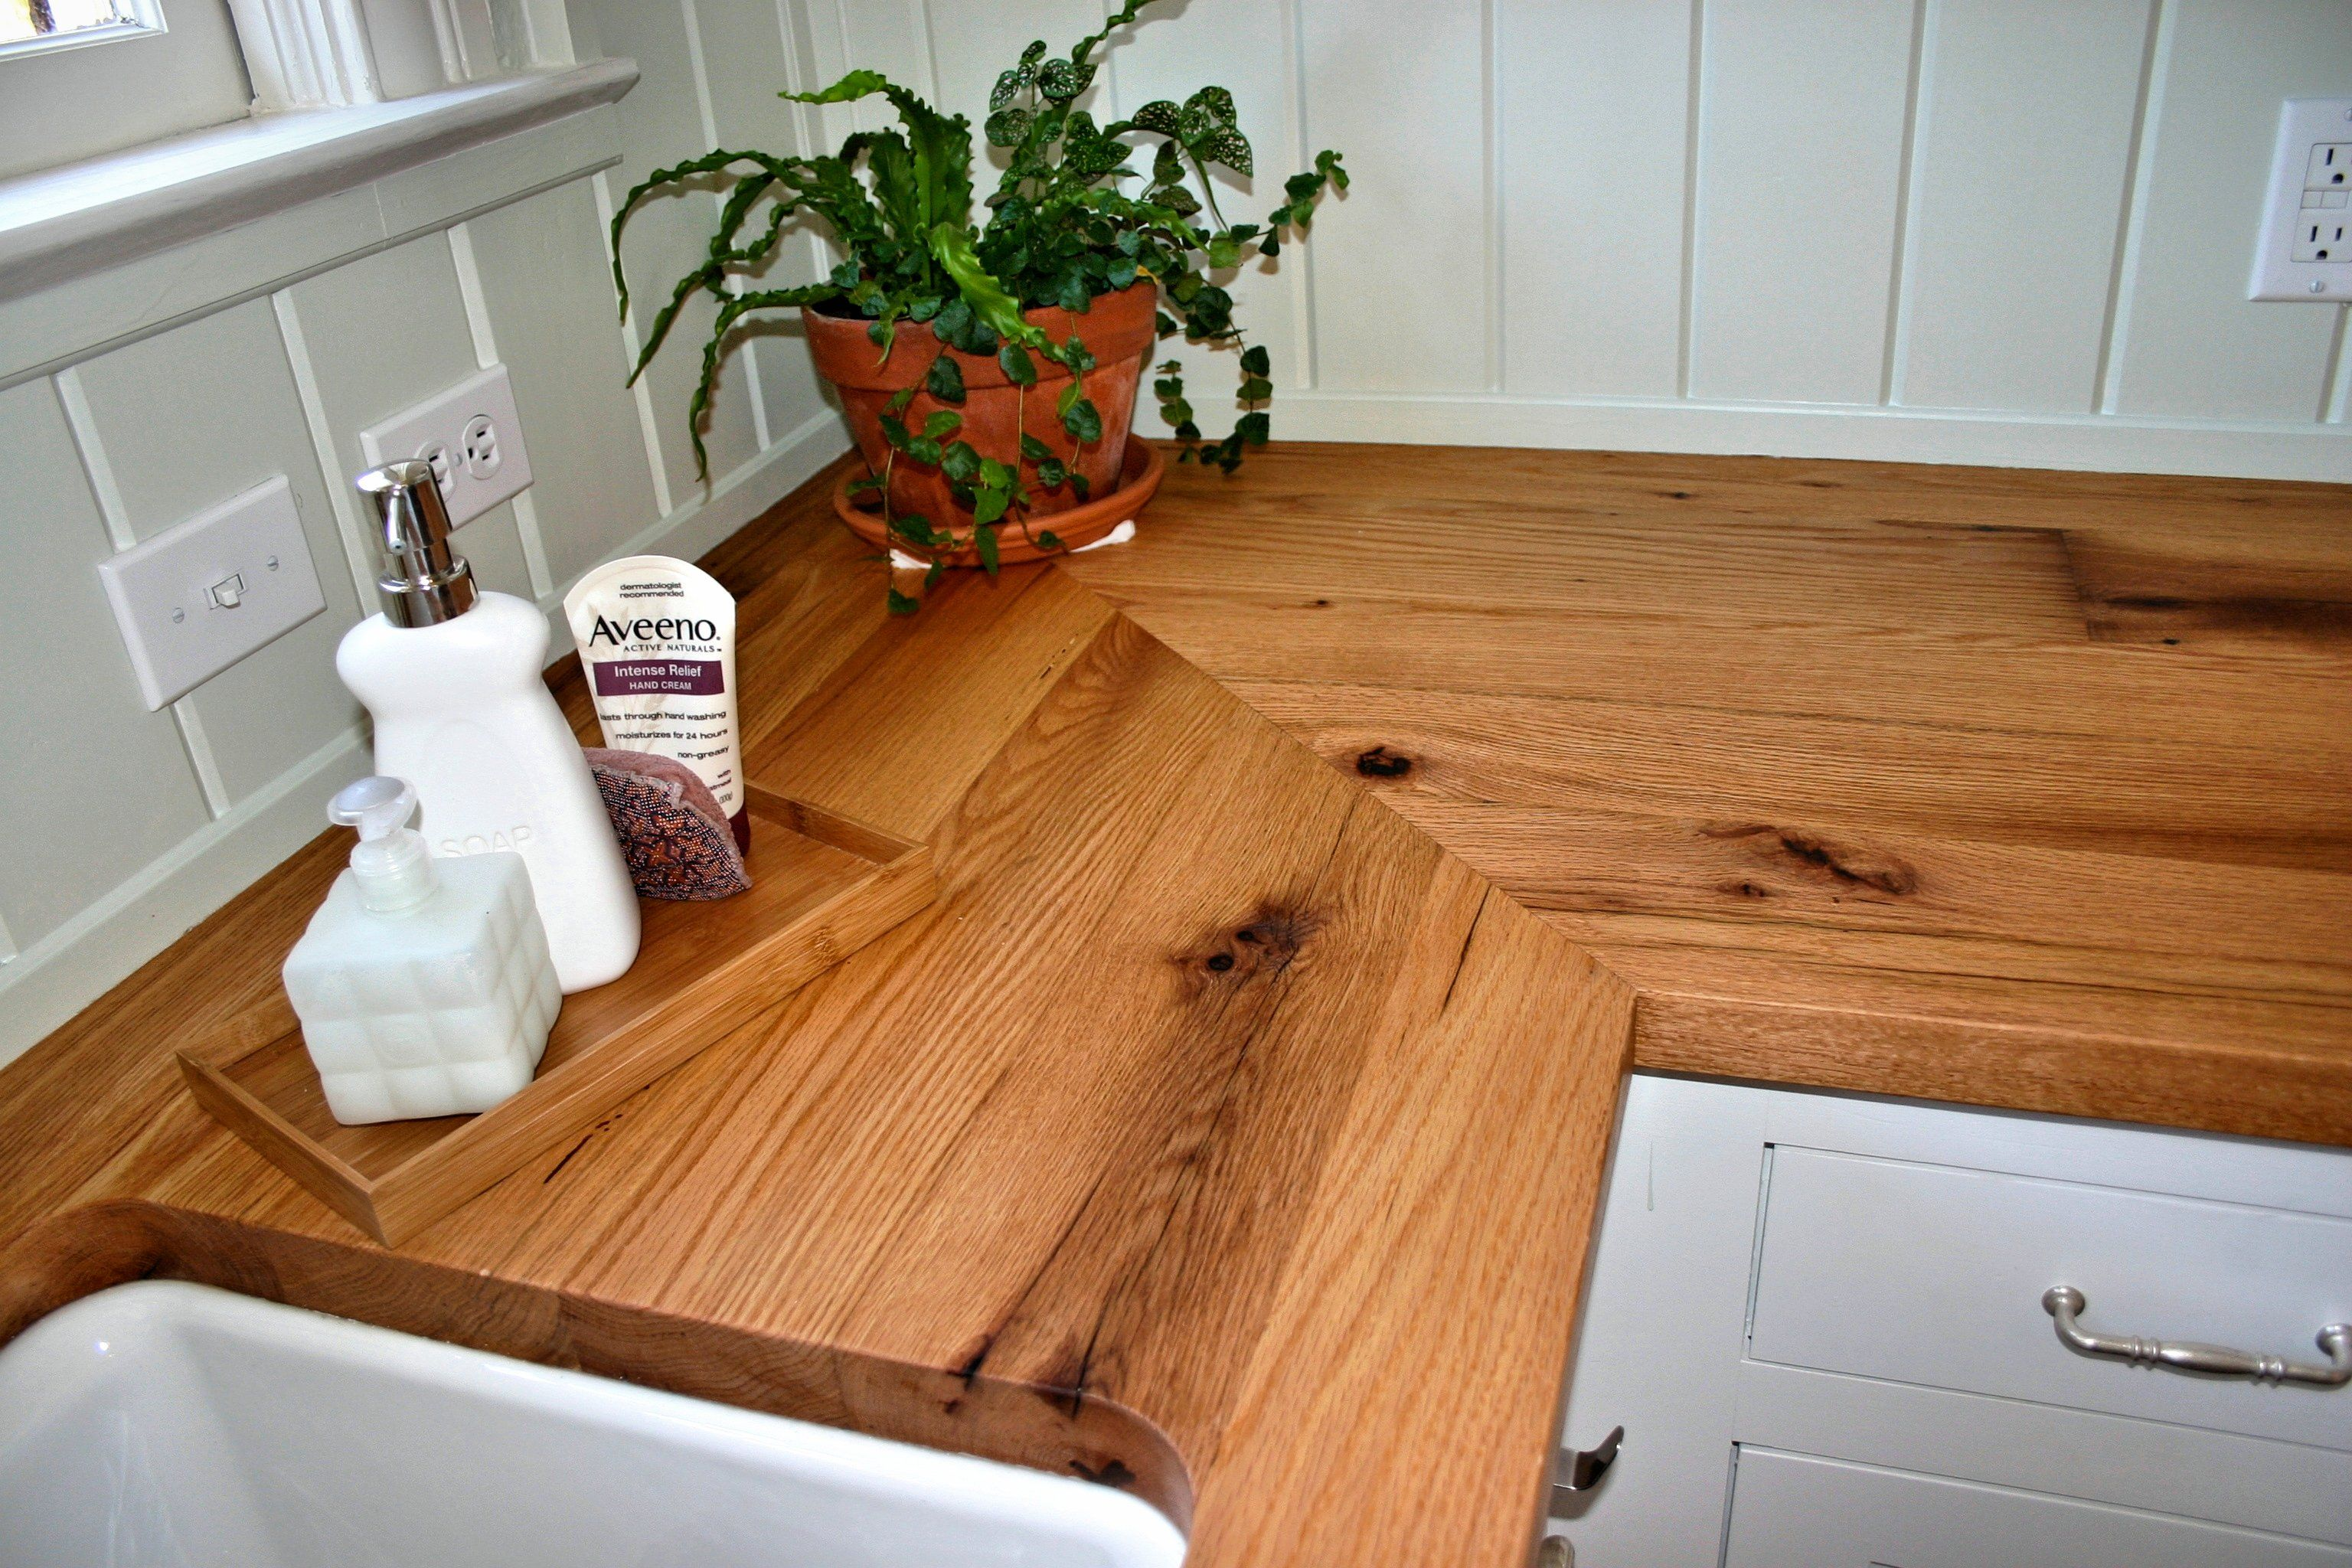 Mitre Joint On A Reclaimed White Oak Wood Countertop. Face Grain  Construction With Tung